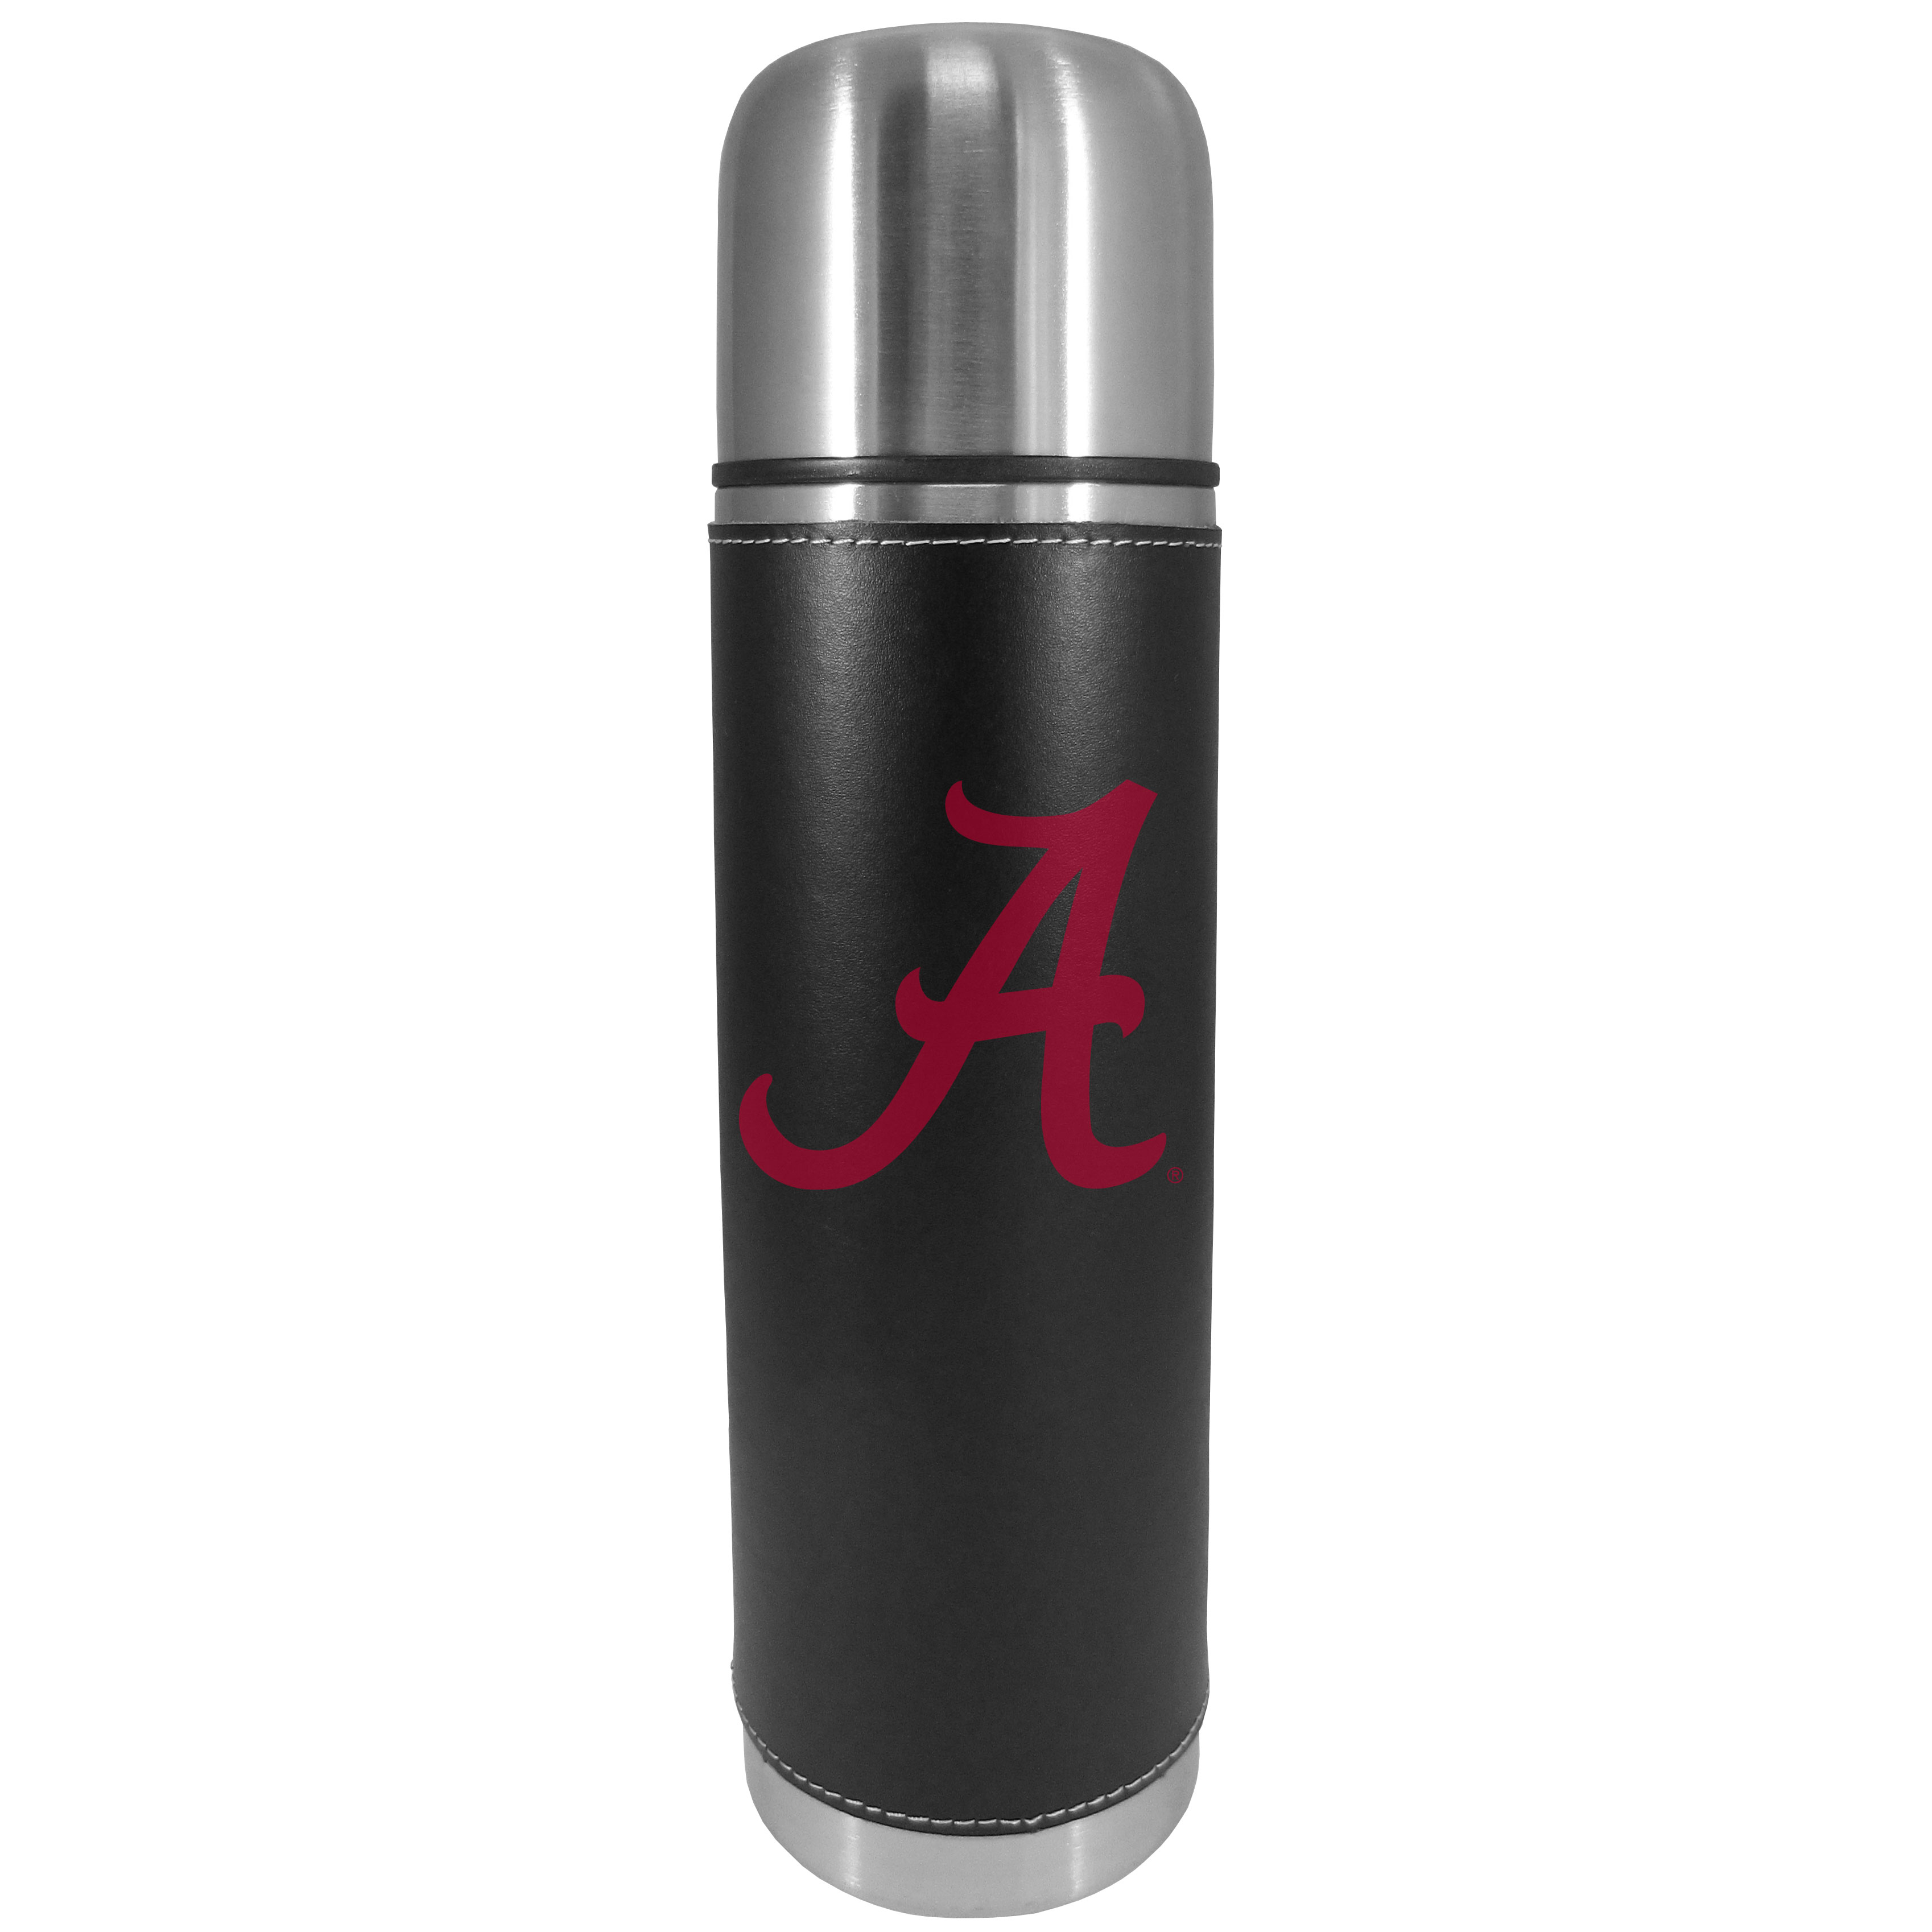 Alabama Crimson Tide Graphics Thermos - This attractive, 26 ounce Alabama Crimson Tide thermos is a great way to keep your beverages hot while on the go. The 11 inch tall, vacuum sealed thermos features a black vinyl wrap with stitched details and a digitally printed team logo. The lid screws on and can be used as a cup.